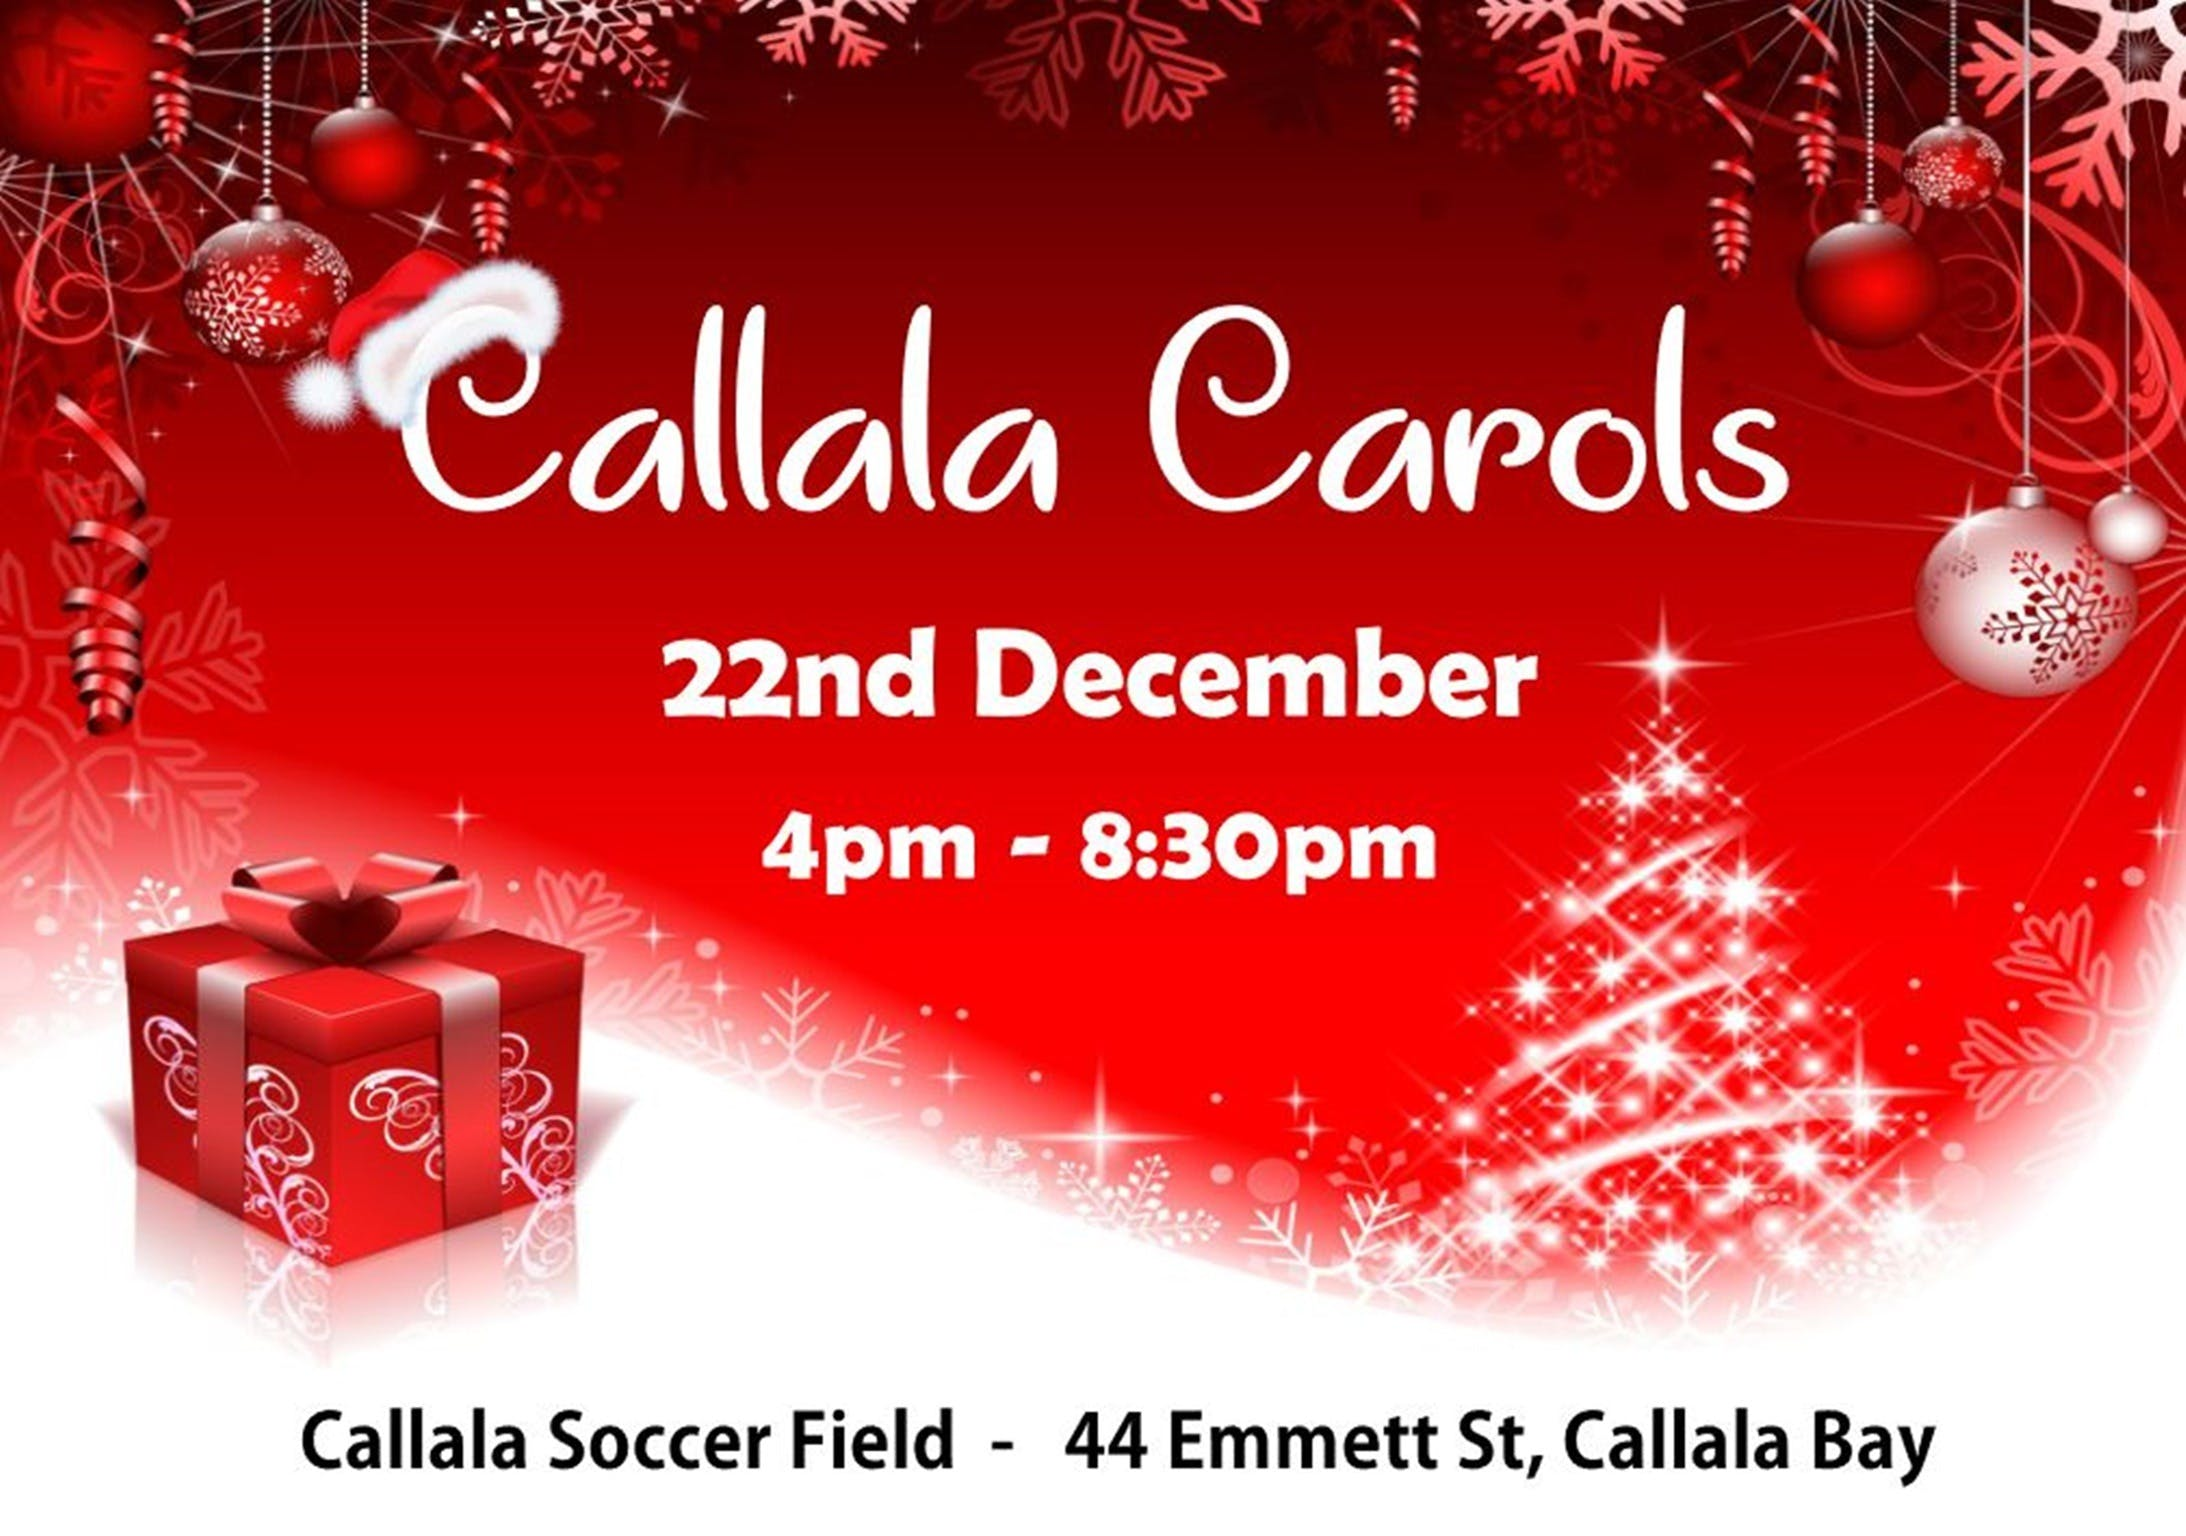 Callala Carols - Restaurants Sydney